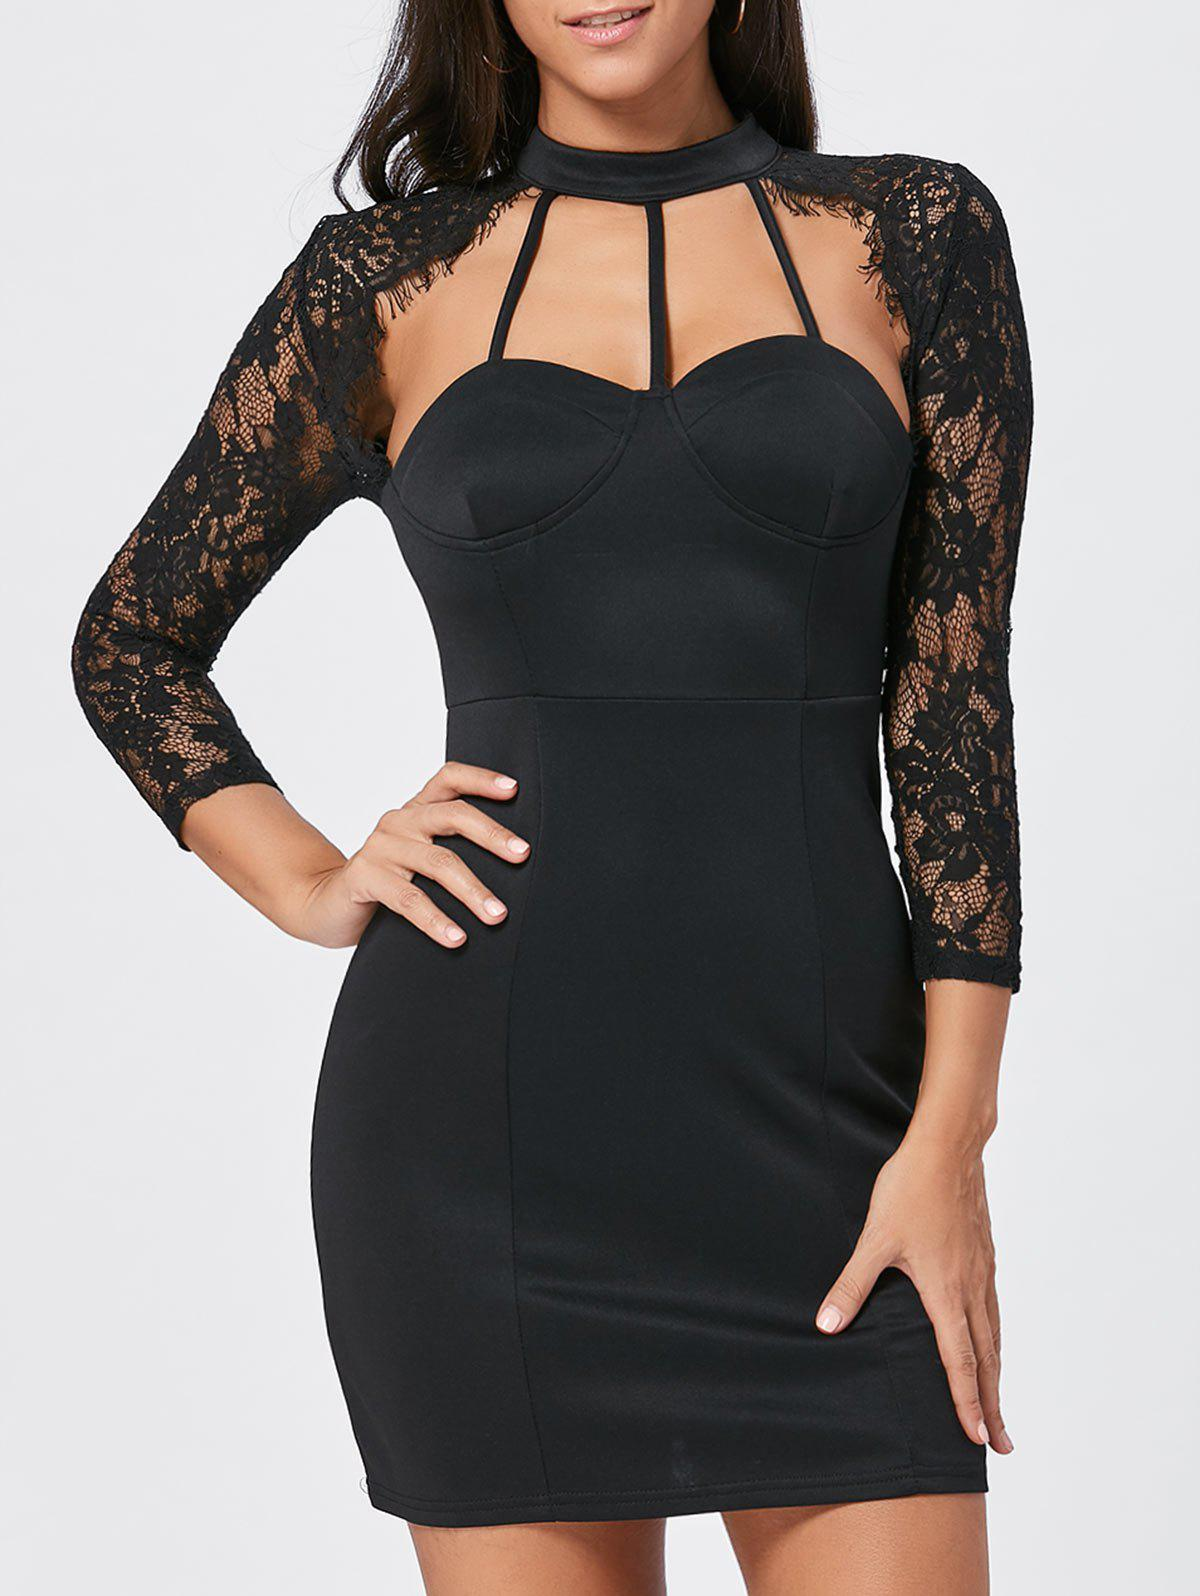 Lace Panel Cut Out Bodycon Dress утюг 5 элемент